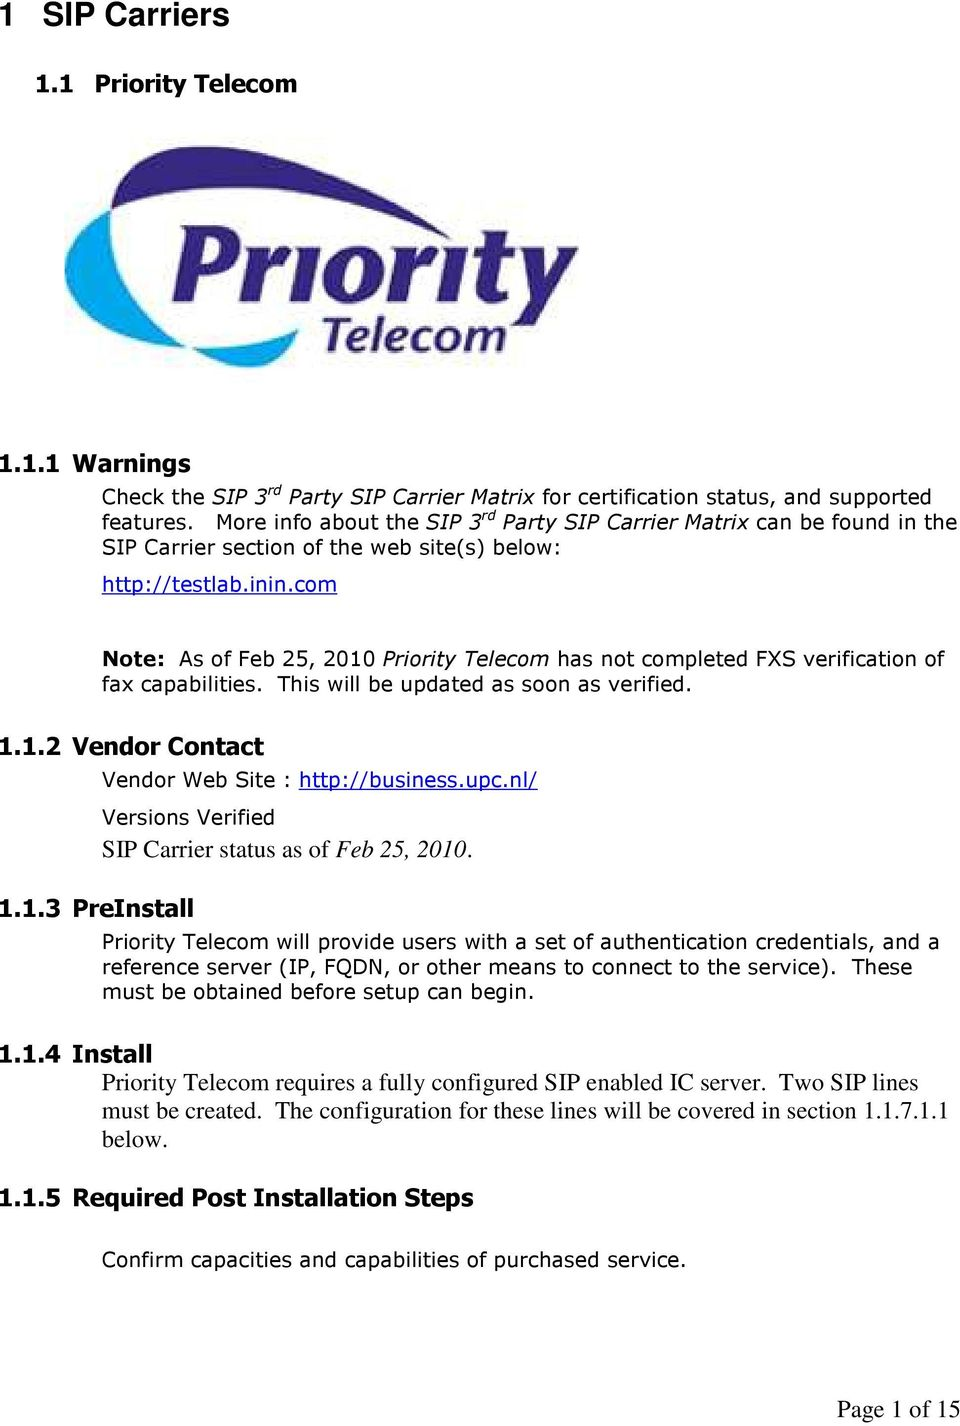 com Note: As of Feb 25, 2010 Priority Telecom has not completed FXS verification of fax capabilities. This will be updated as soon as verified. 1.1.2 Vendor Contact 1.1.3 PreInstall Vendor Web Site : http://business.